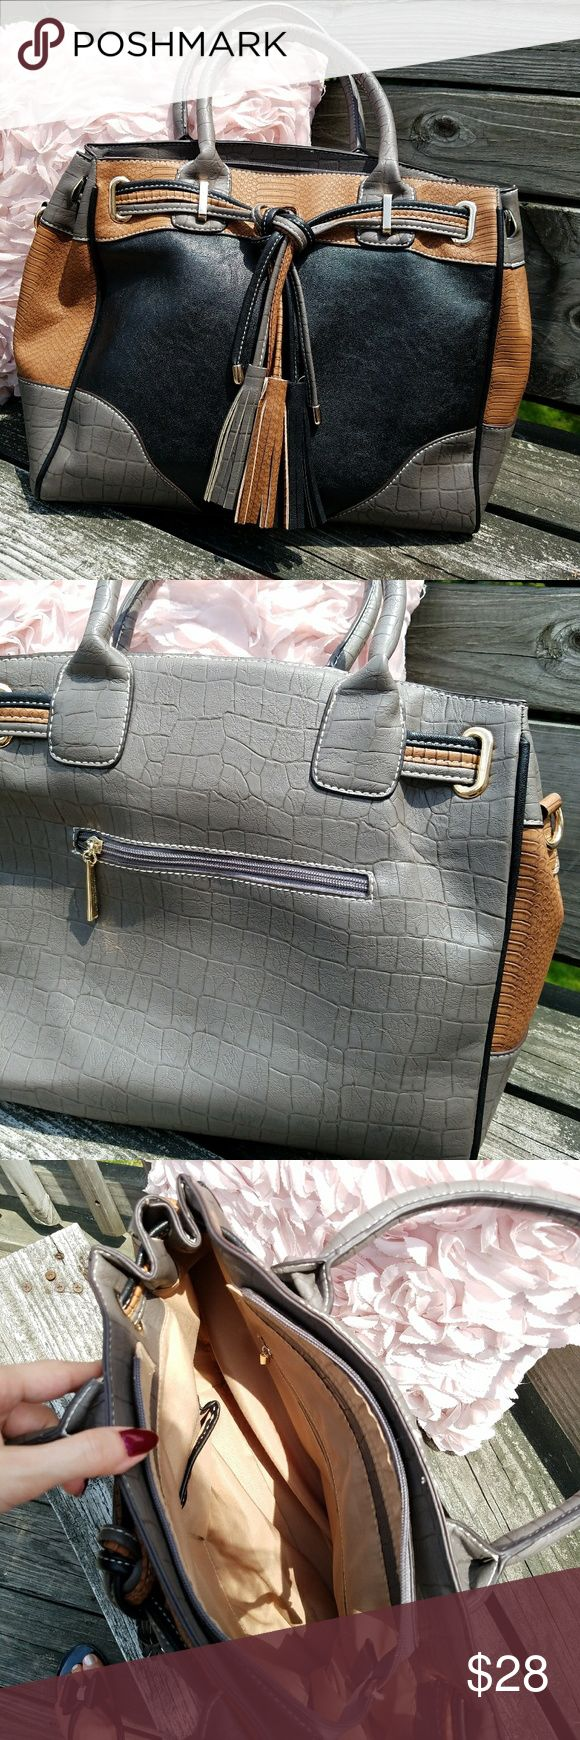 3 Color Tote New without tags!  Gorgeous embossed faux leather with tassel detail.  3 color bag with gray, black, and cognac.  Purchased from Marks and Spencer in England. Marks & Spencer Bags